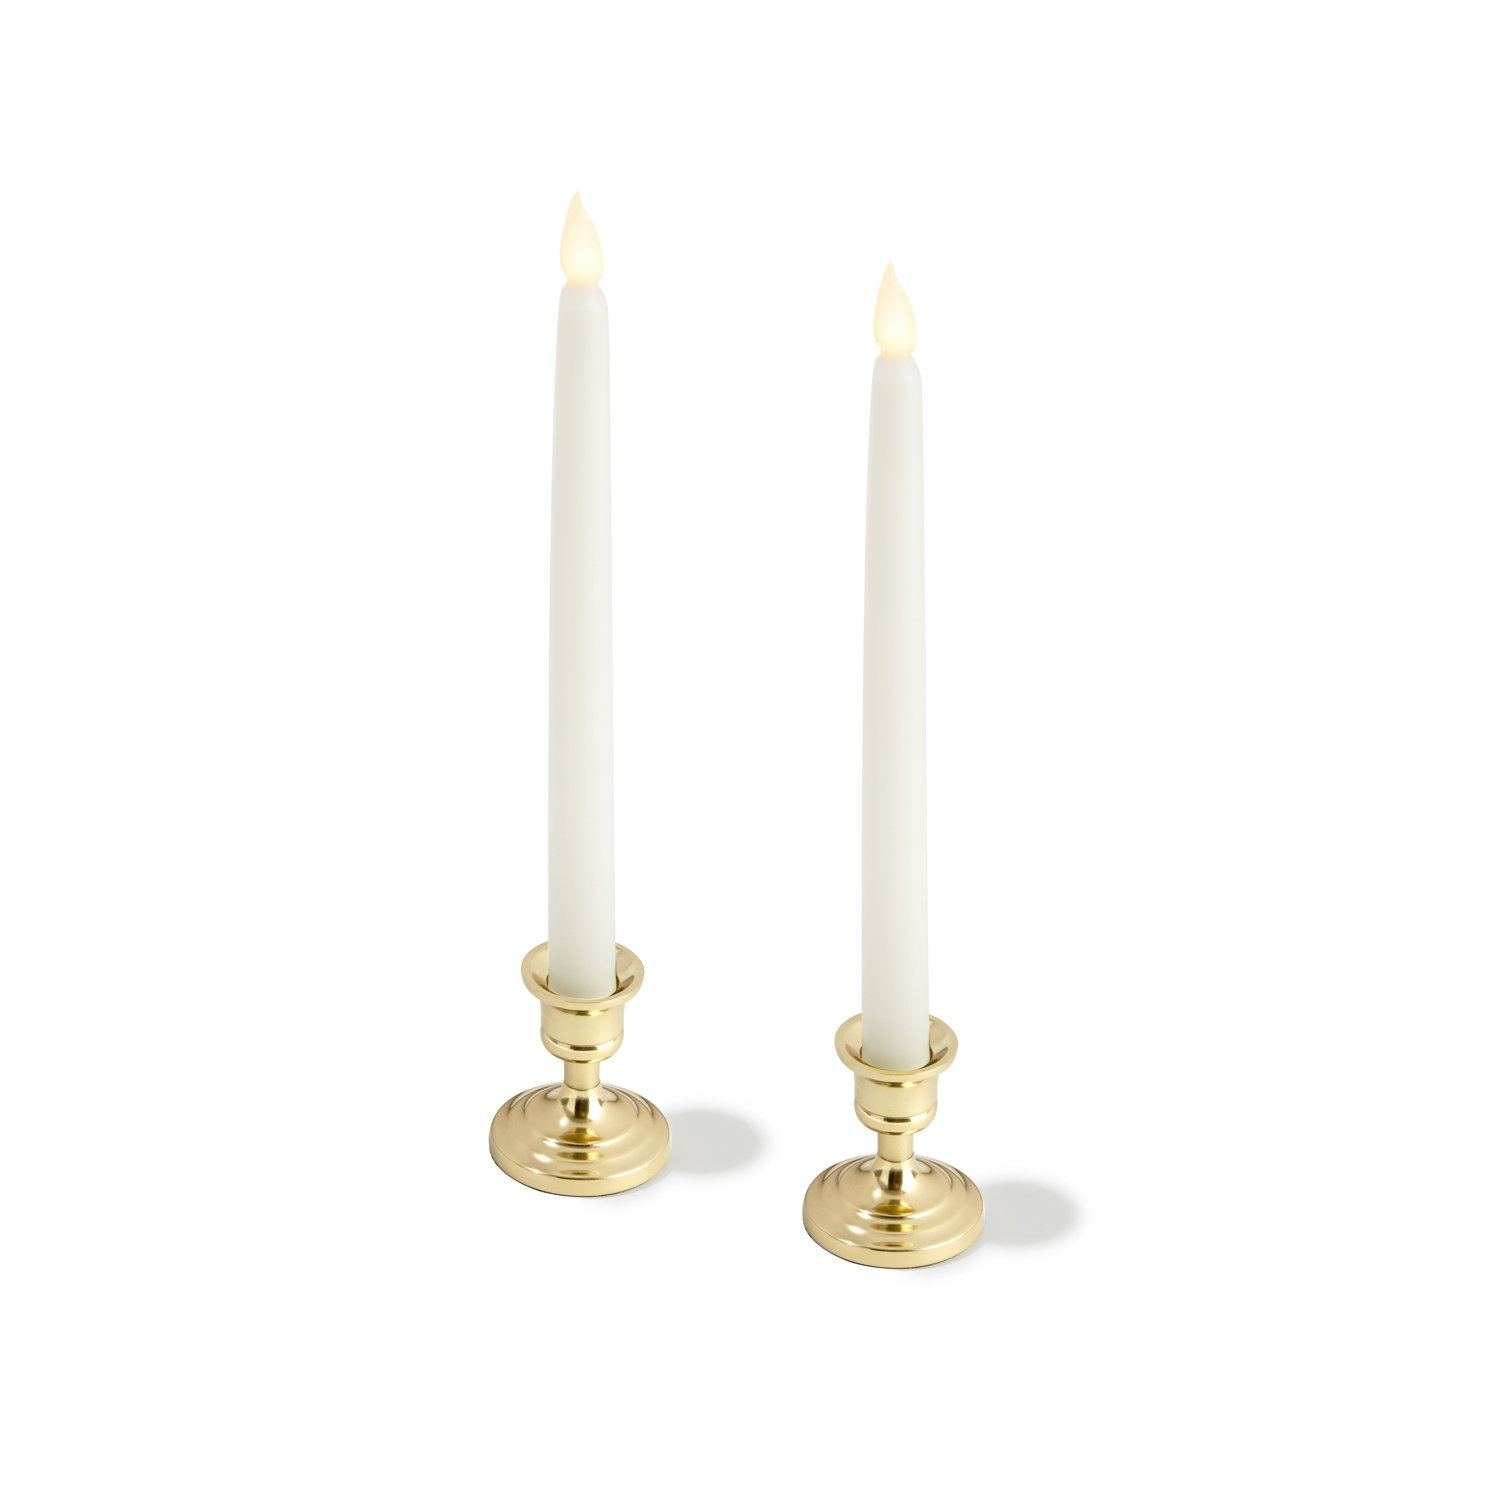 LampLust Brass Finished Taper Candle Holders, 3 Inches, Metal, Traditional Shape, Fits Standard Candlestick Diameters - Set of 2 by LampLust (Image #2)